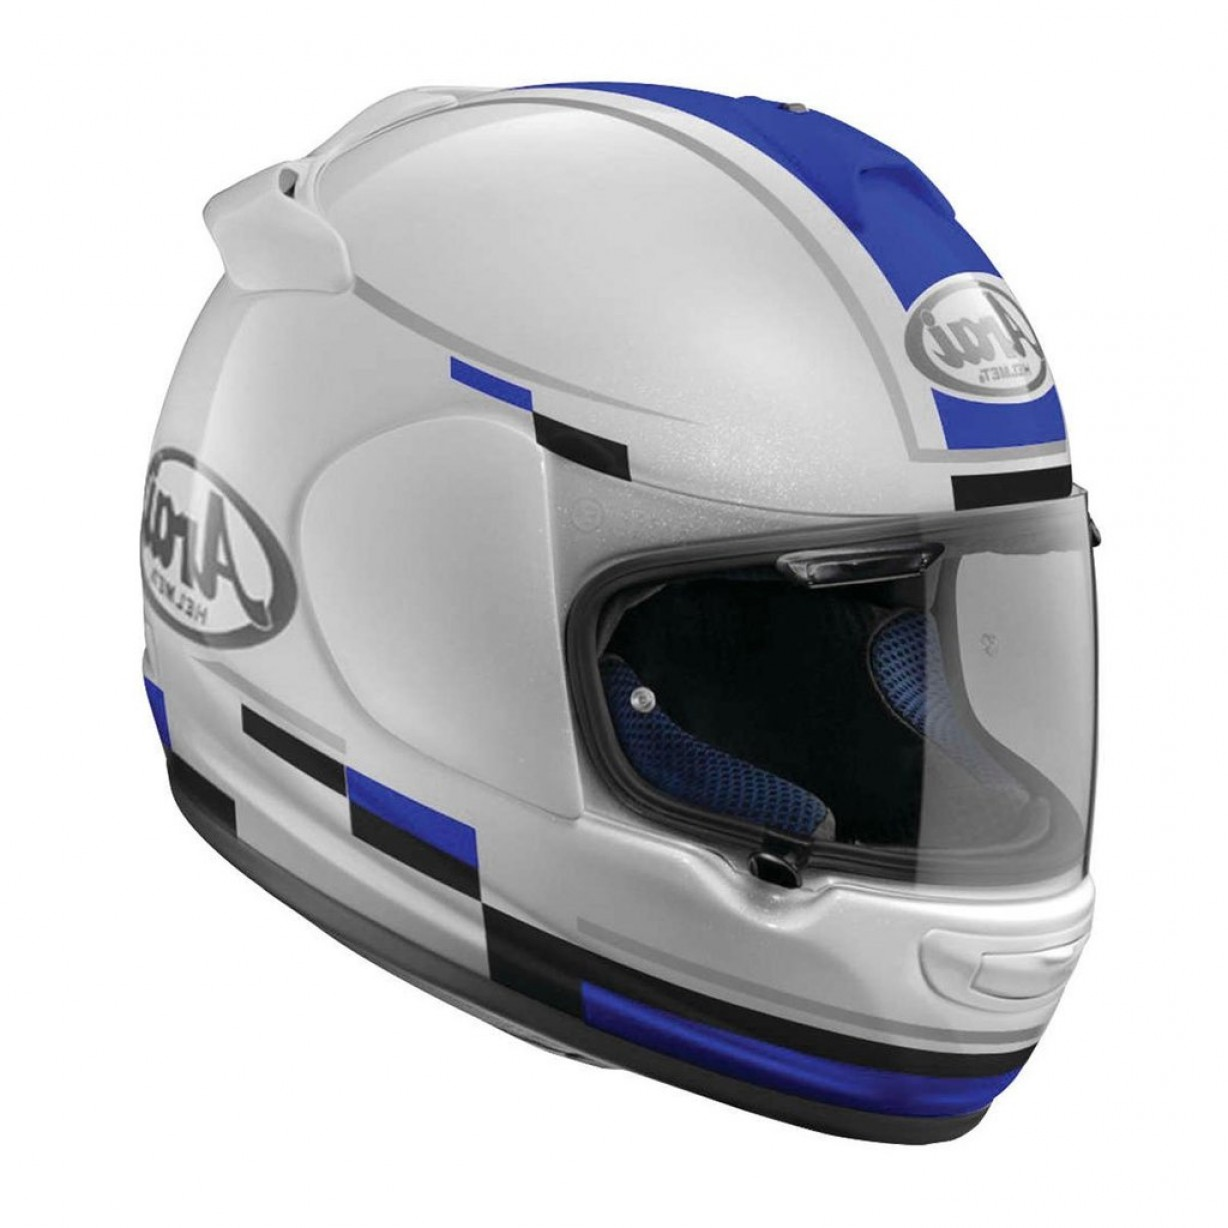 Arai Vector Green White 1: Arai Vector Blaze Full Face Helmet